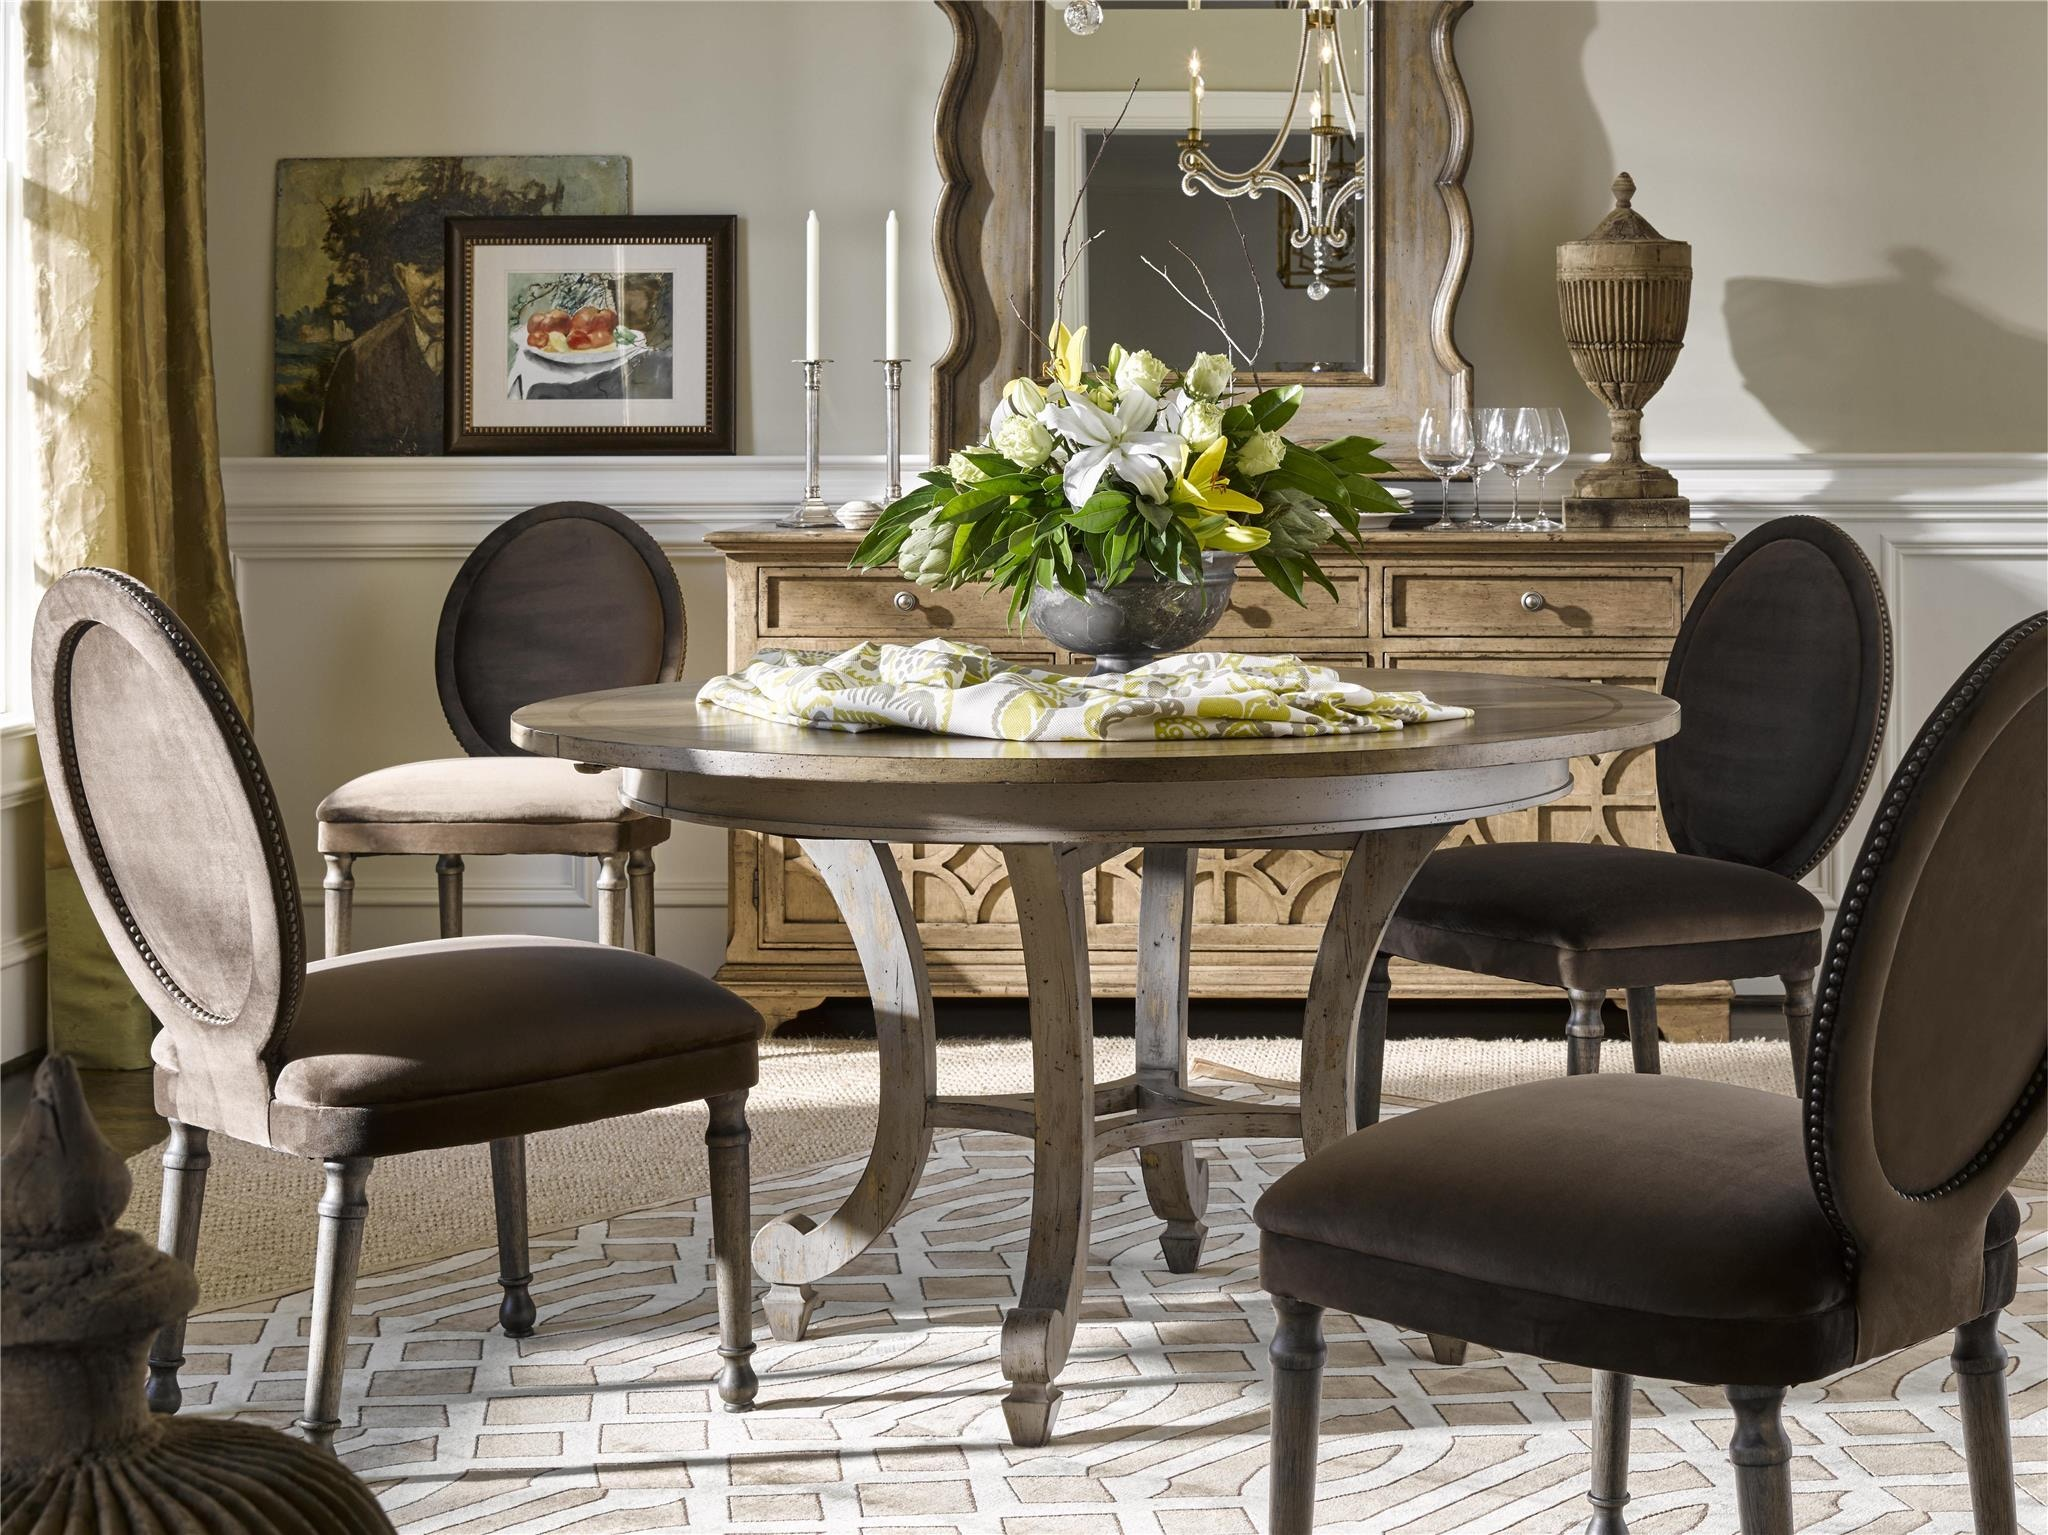 Fine Furniture Design Eastleigh Dining Table 1570 811/810